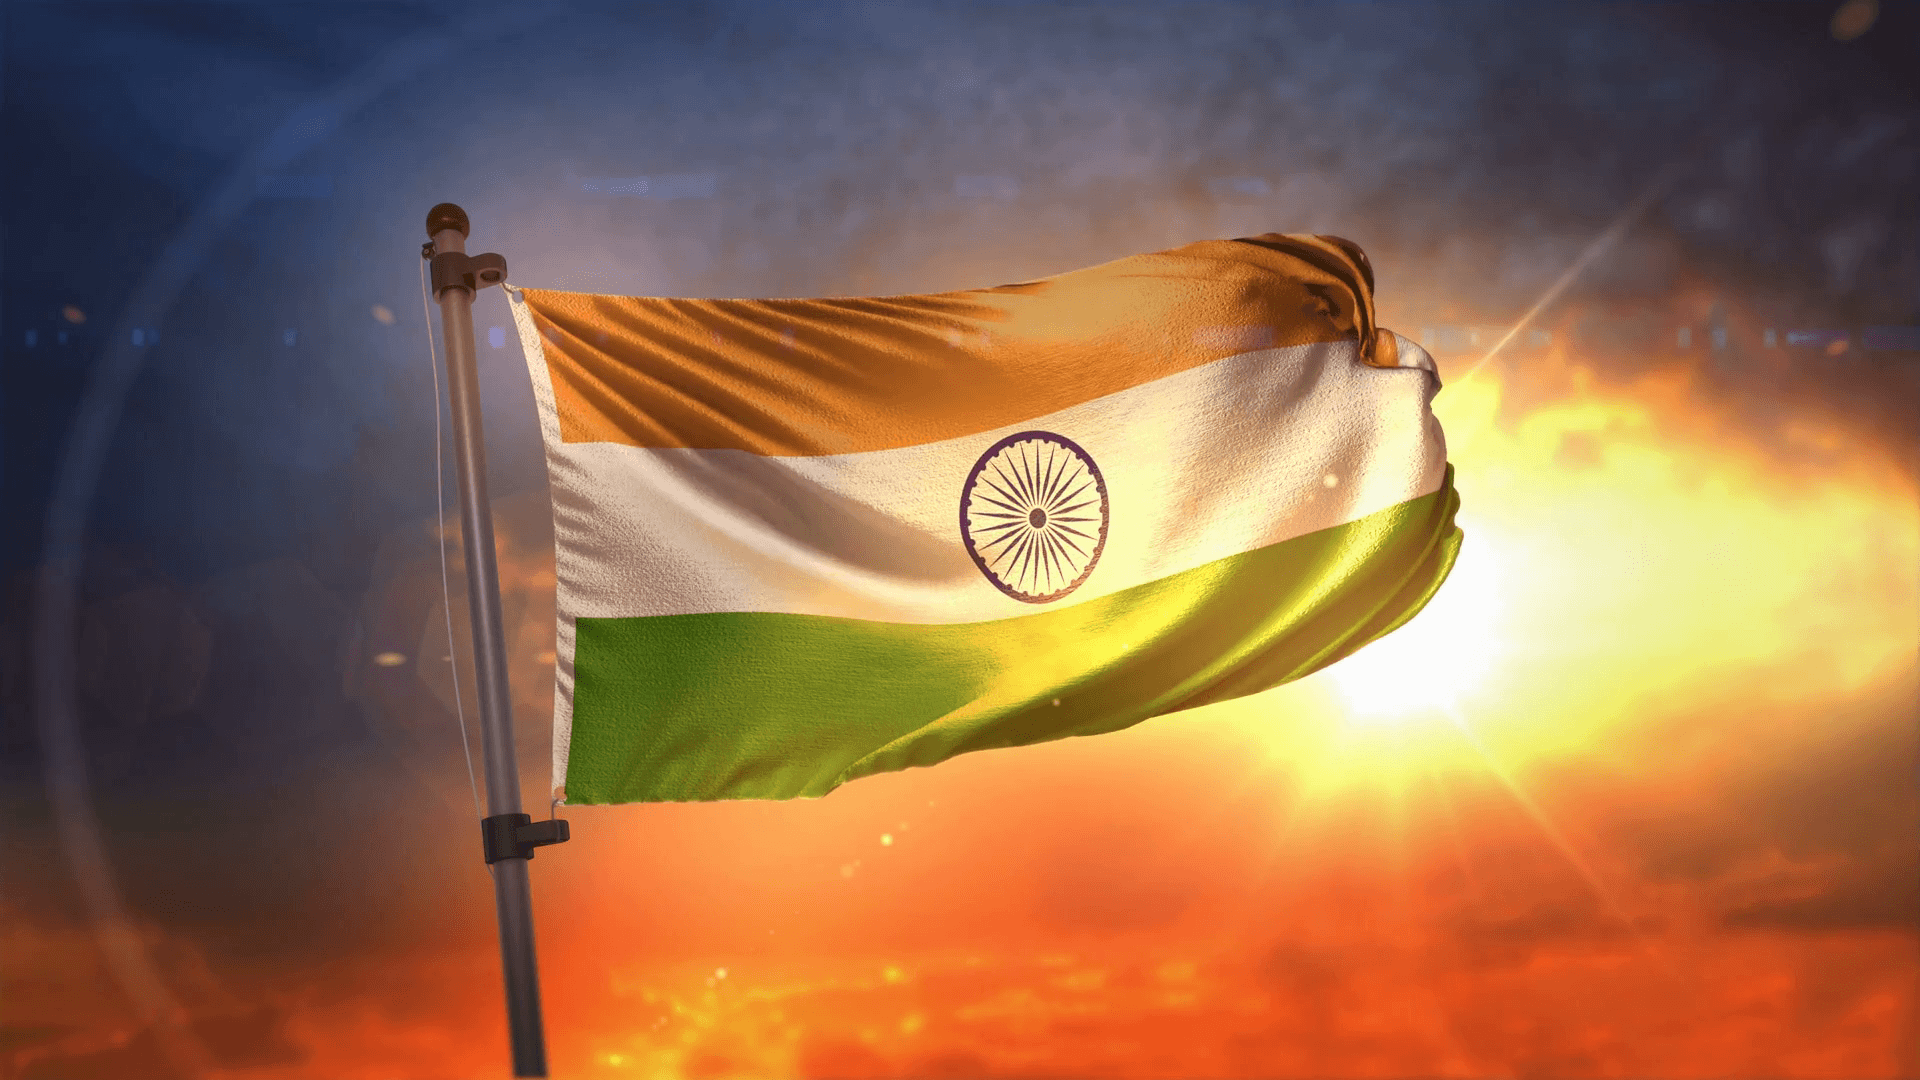 India Flag Hd: Indian Flag 4K Wallpapers